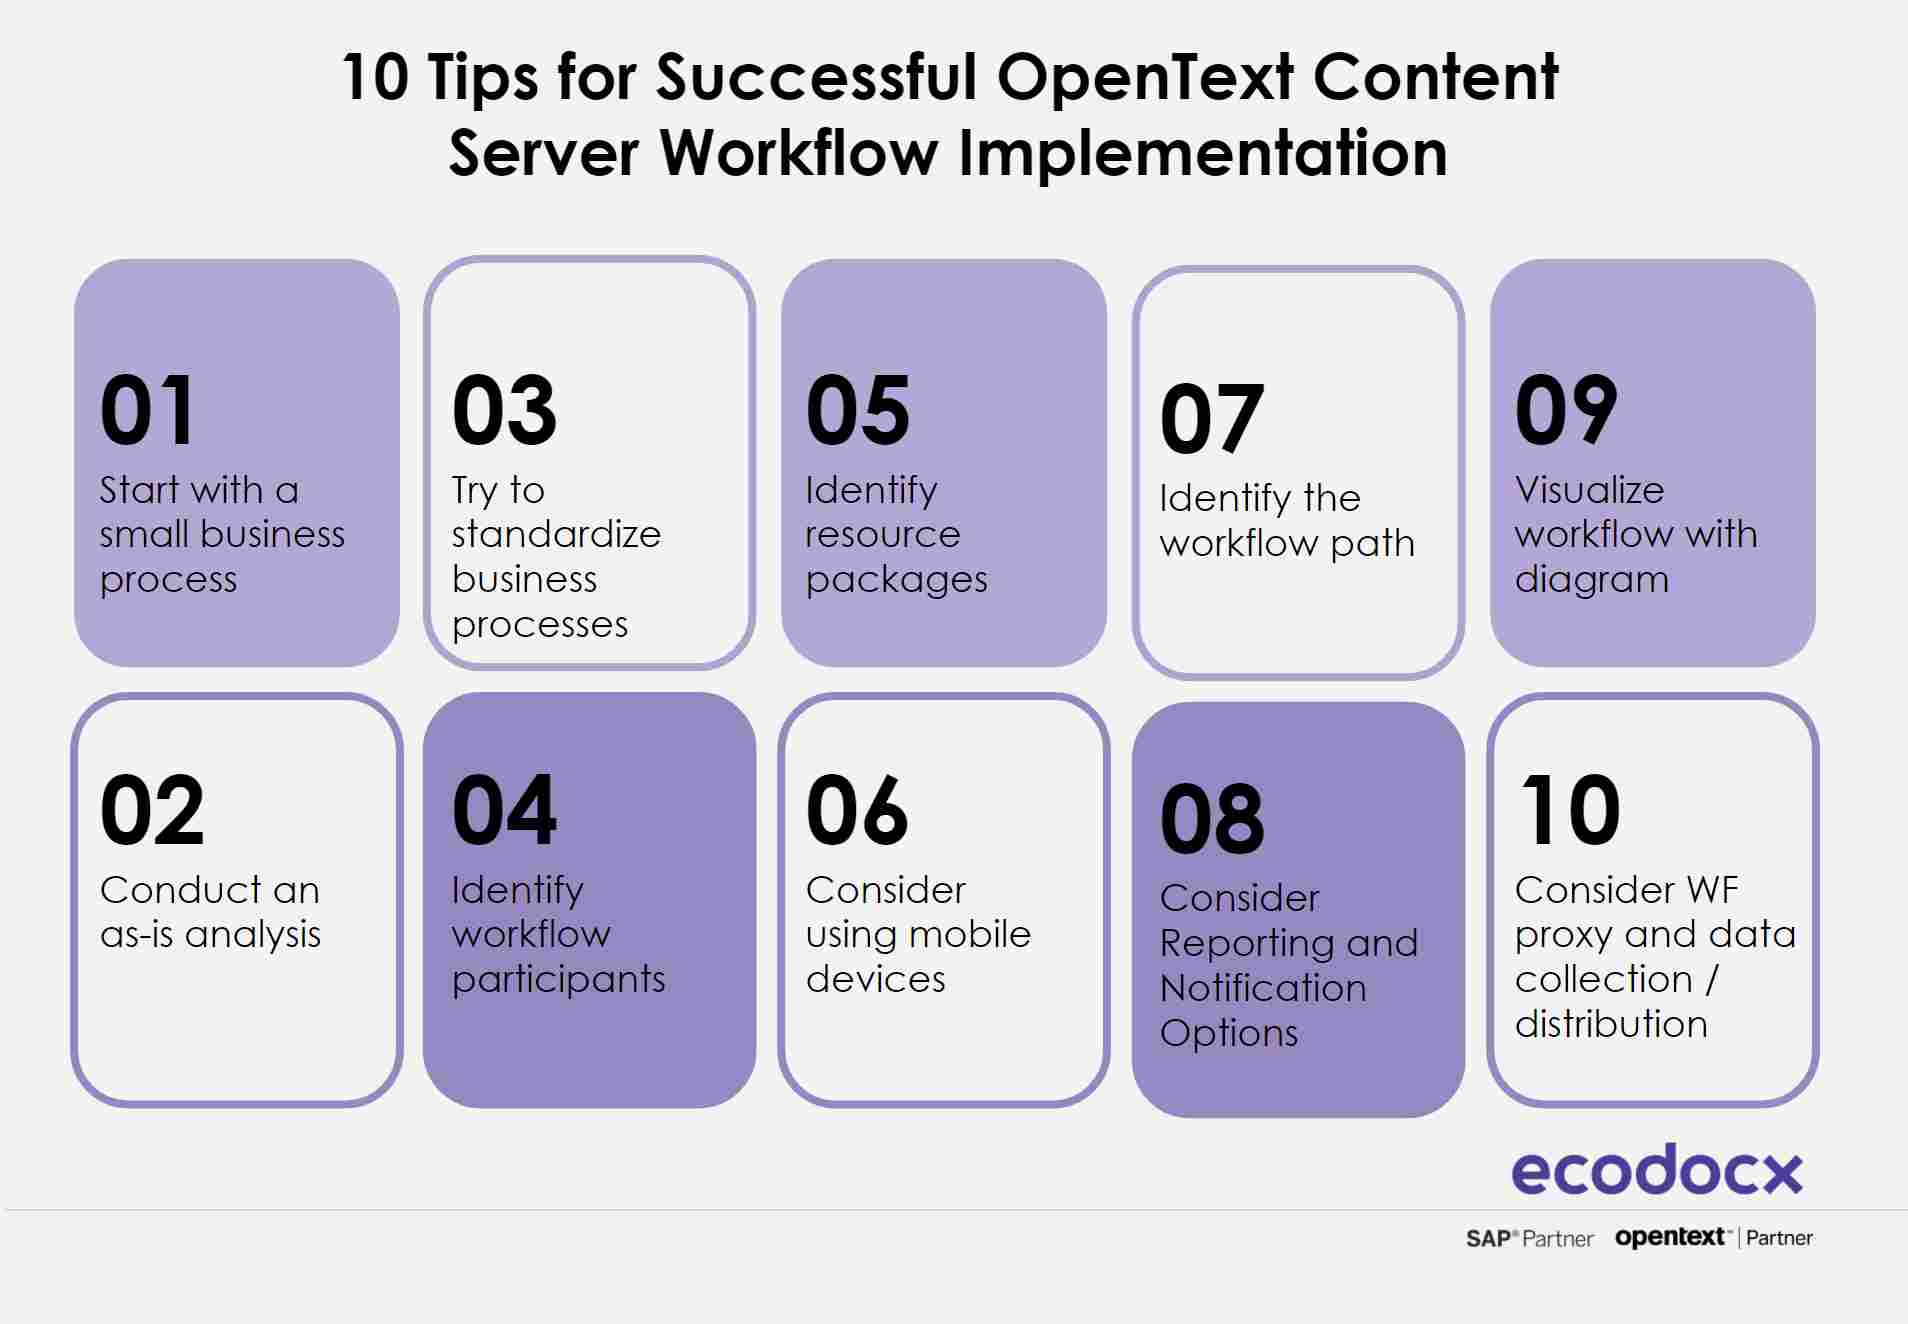 10 tips for successful opentext content server workflow implementation